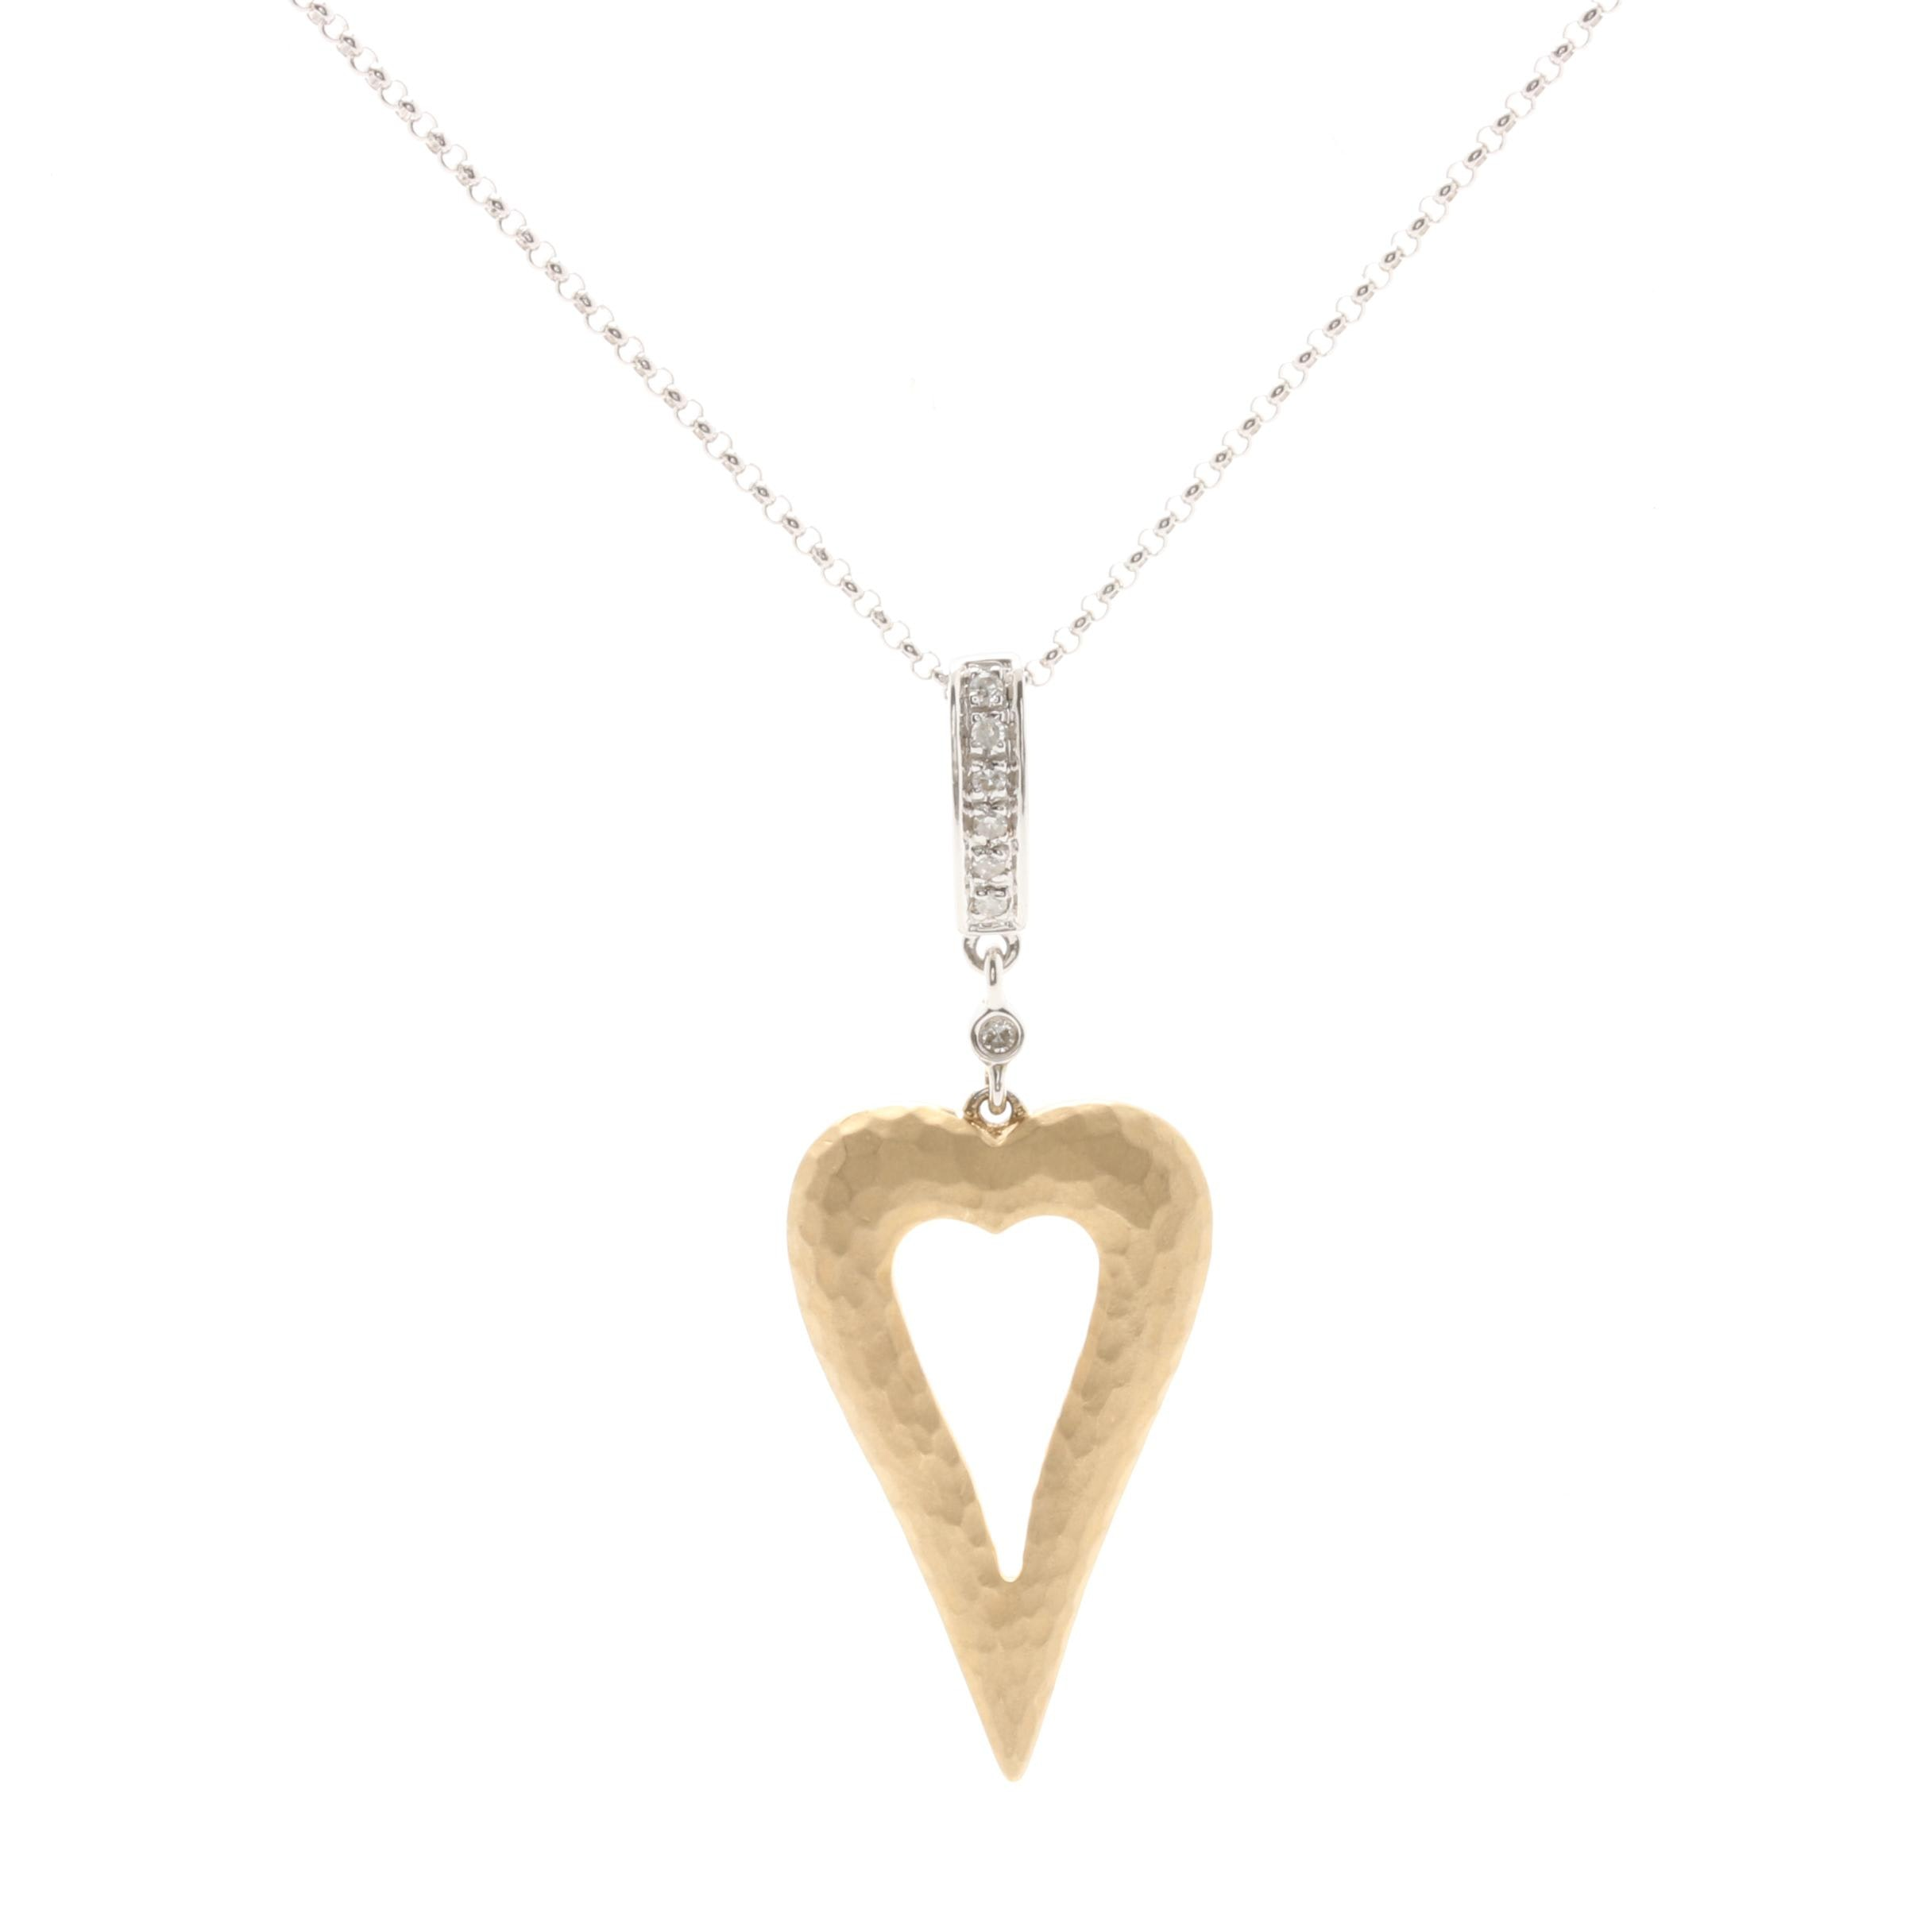 14K White and Yellow Gold Diamond Pendant Necklace